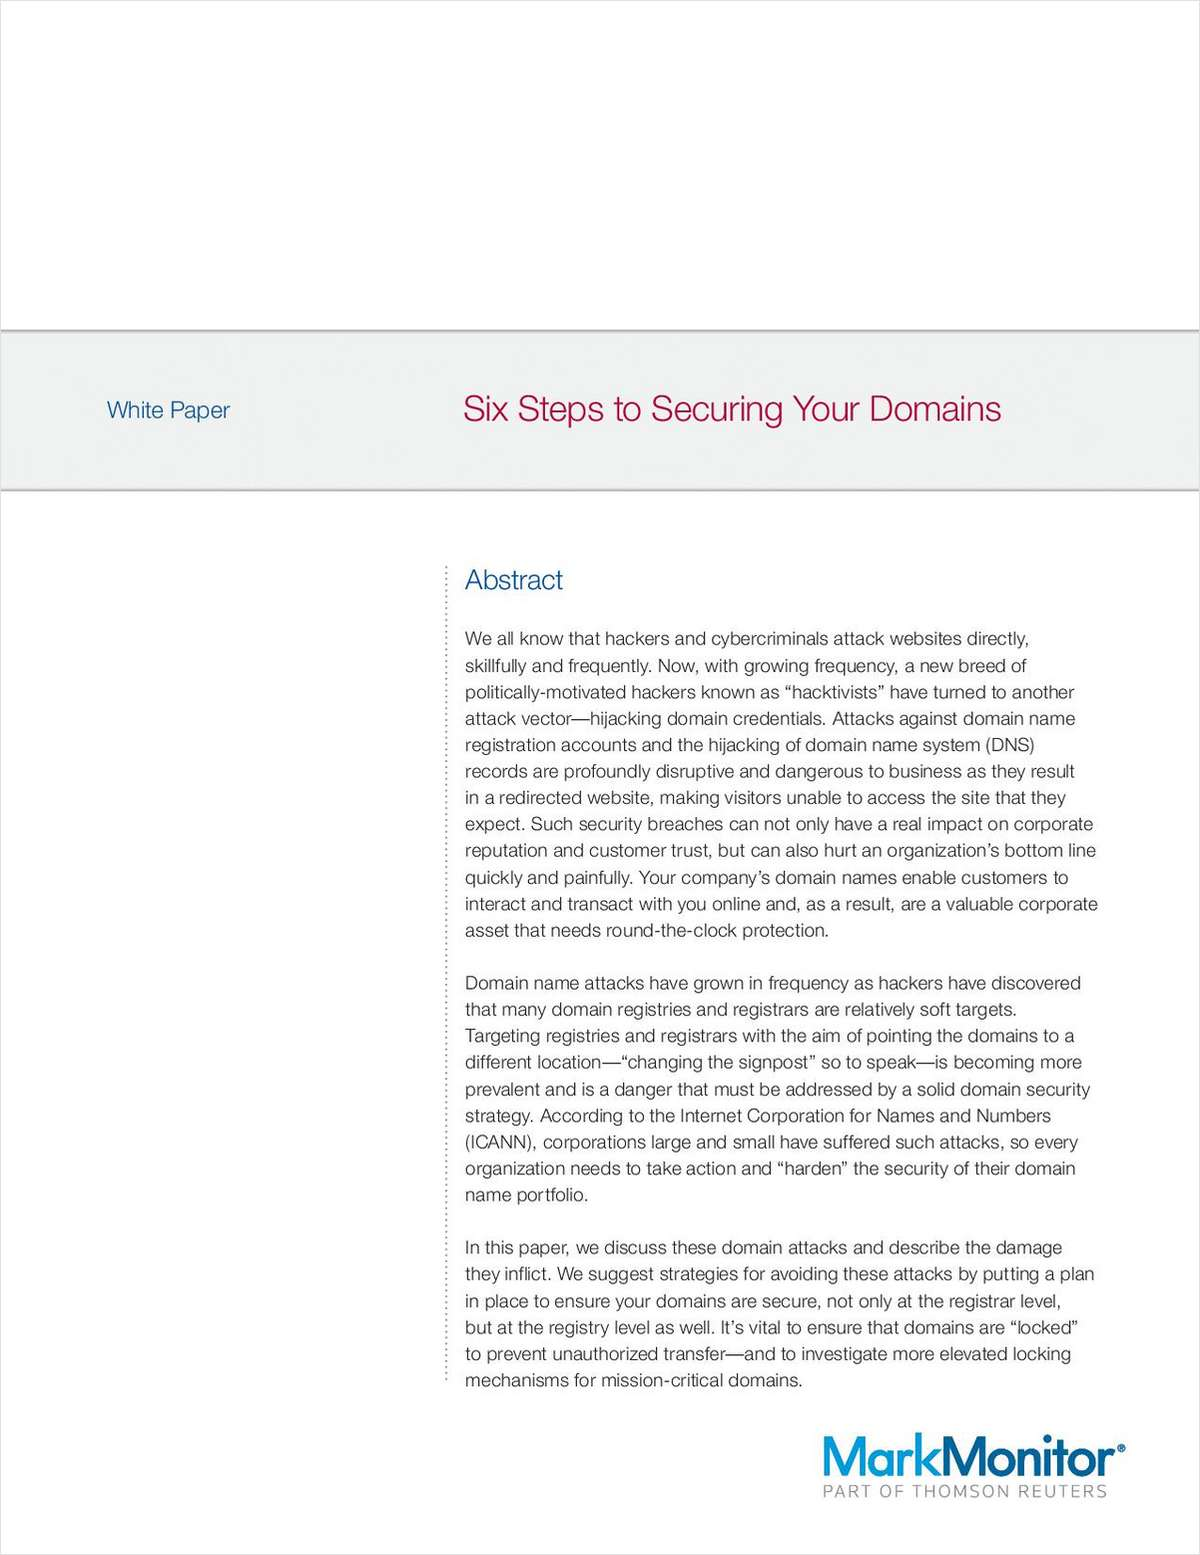 Six Steps to Securing Your Domains